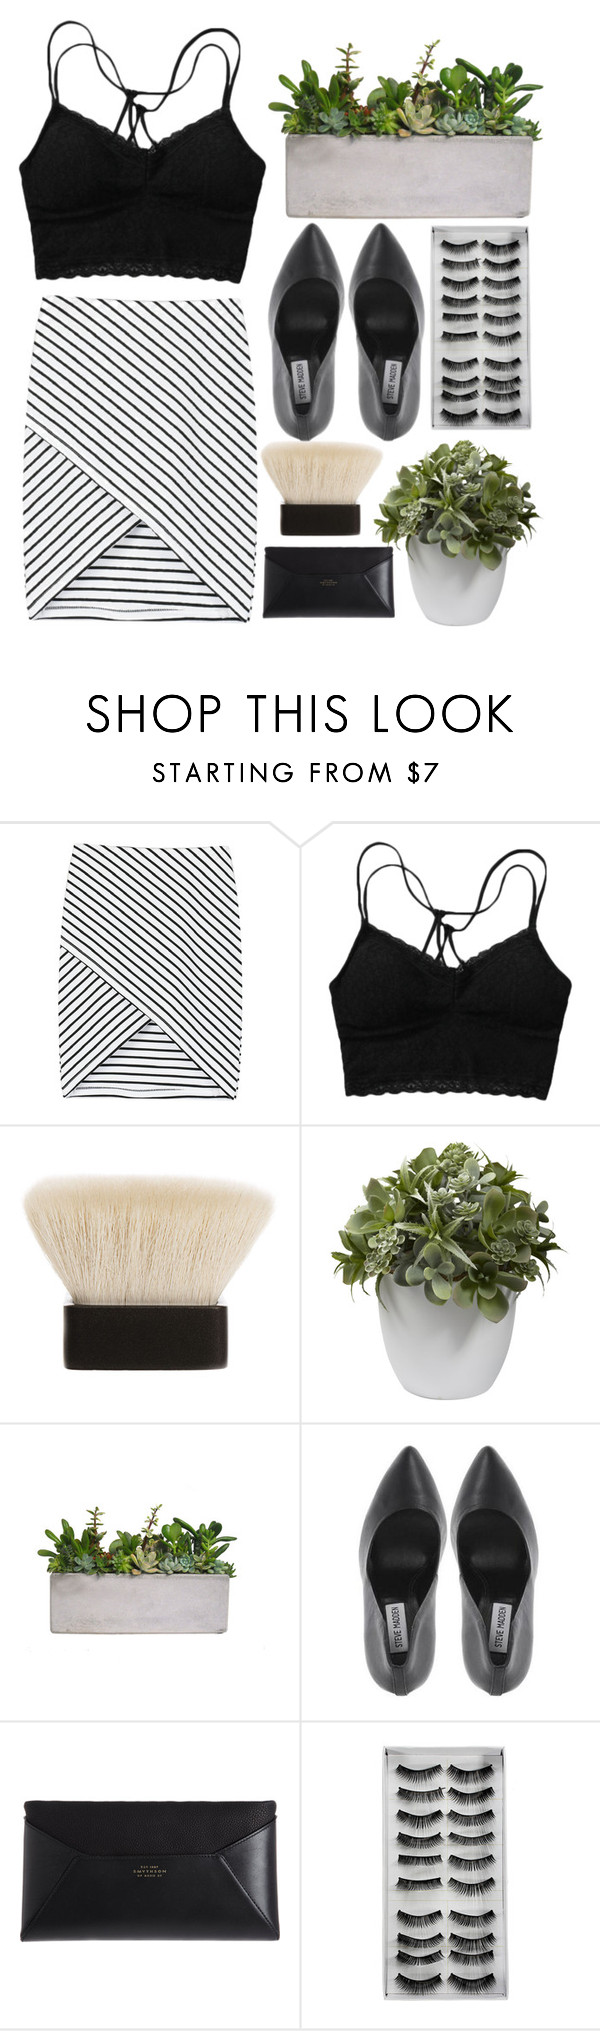 """""""barkley"""" by unicornskitkat ❤ liked on Polyvore featuring mode, WithChic, Claudio Riaz, Nearly Natural, Smythson, women's clothing, women, female, woman en misses"""